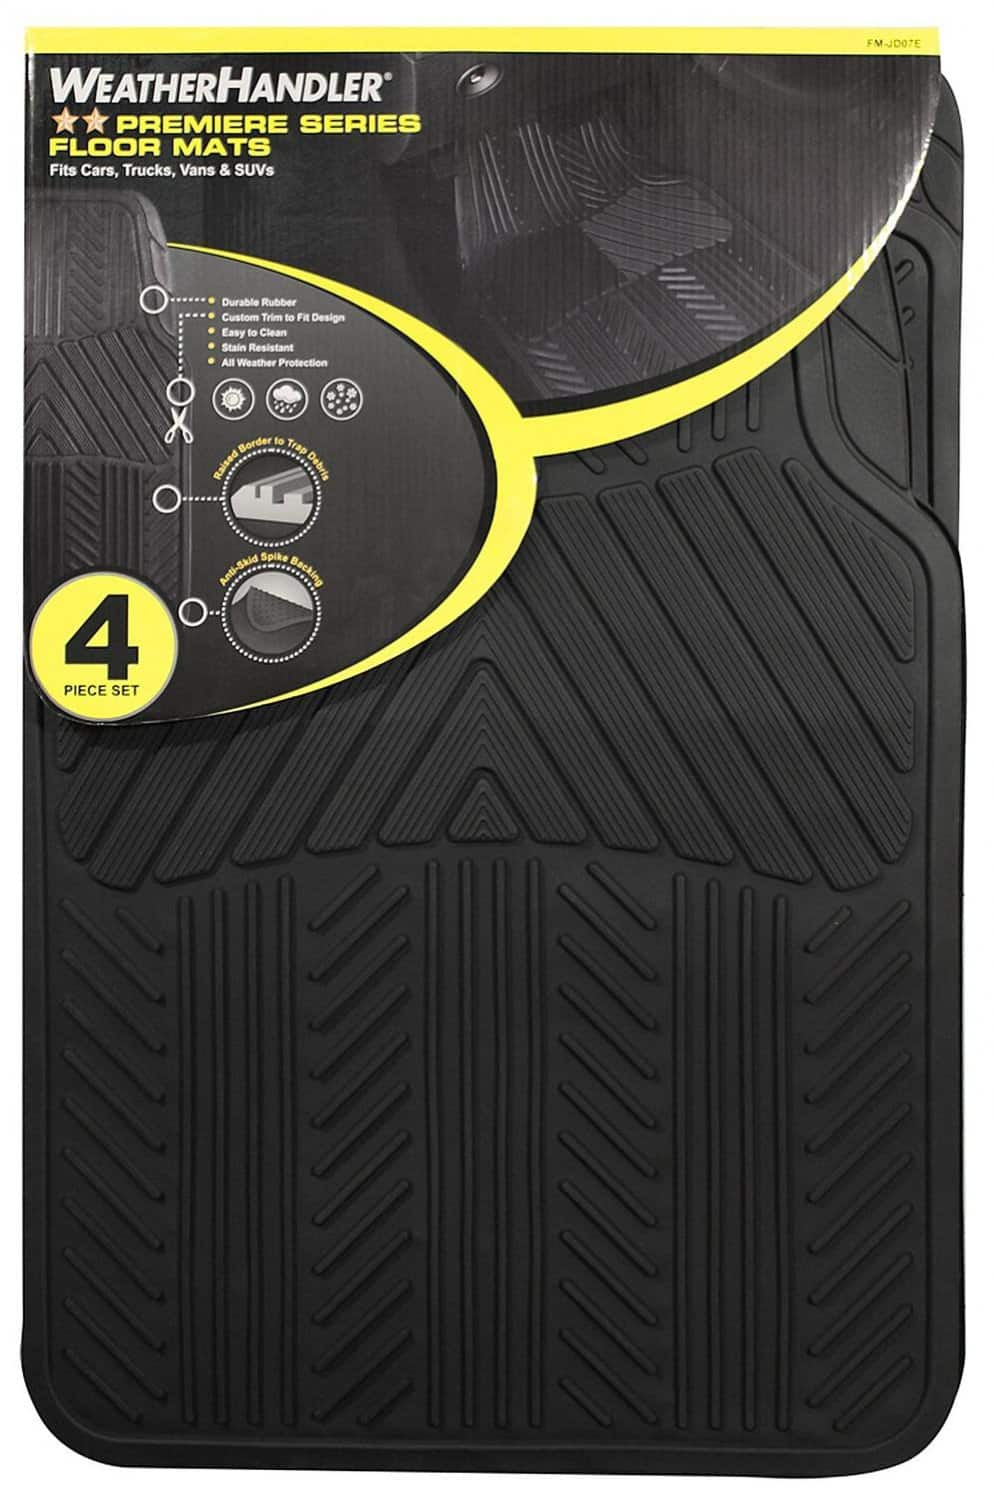 WeatherHandler All Season 4 pc. Rubber Floor Mat Set $9.99 (reg. 24.99) @ Sears.com